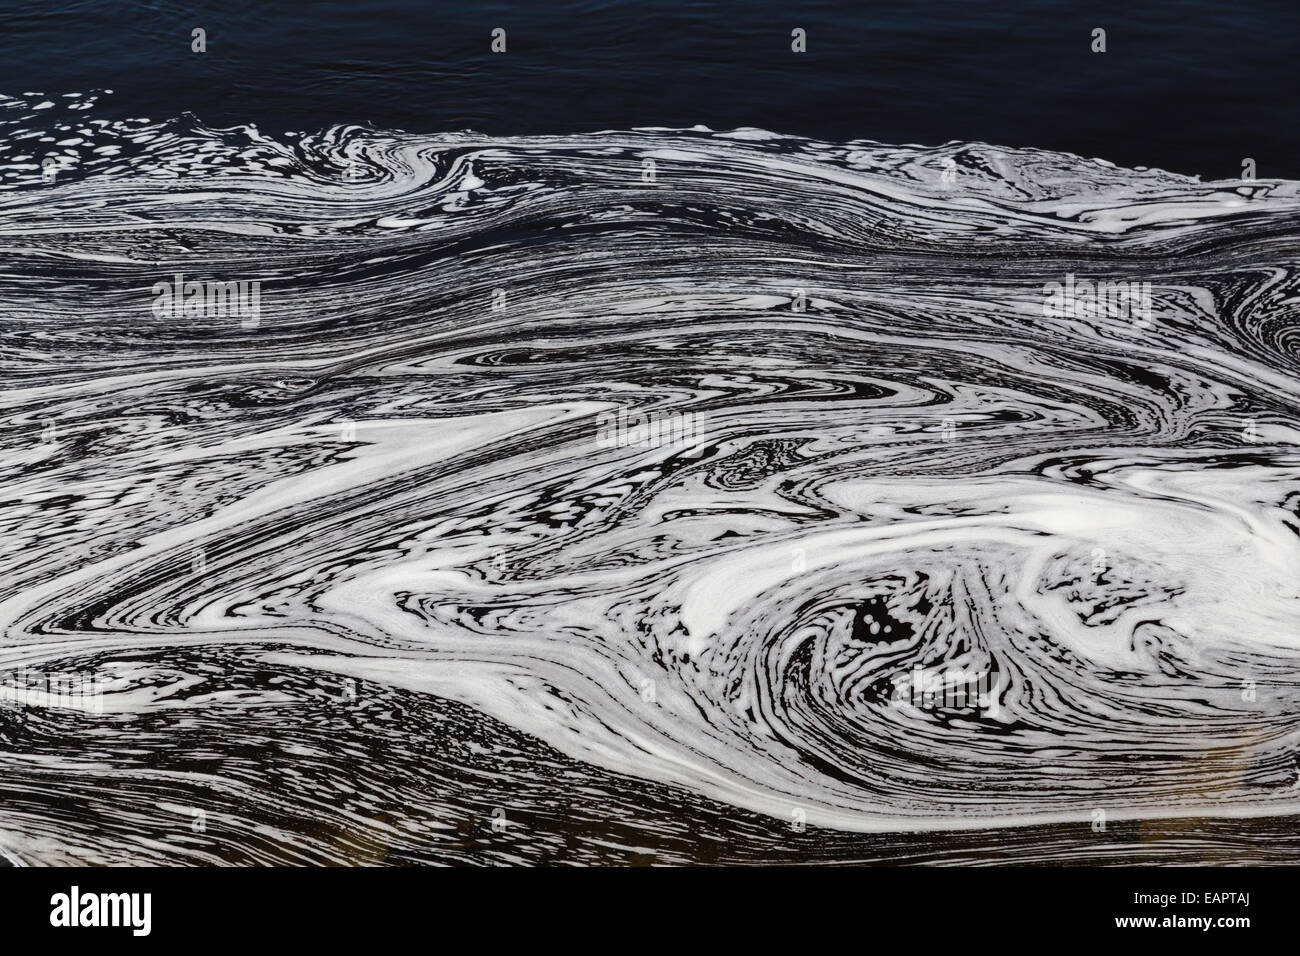 Water with Swirly Patterns in Ottawa River - Stock Image